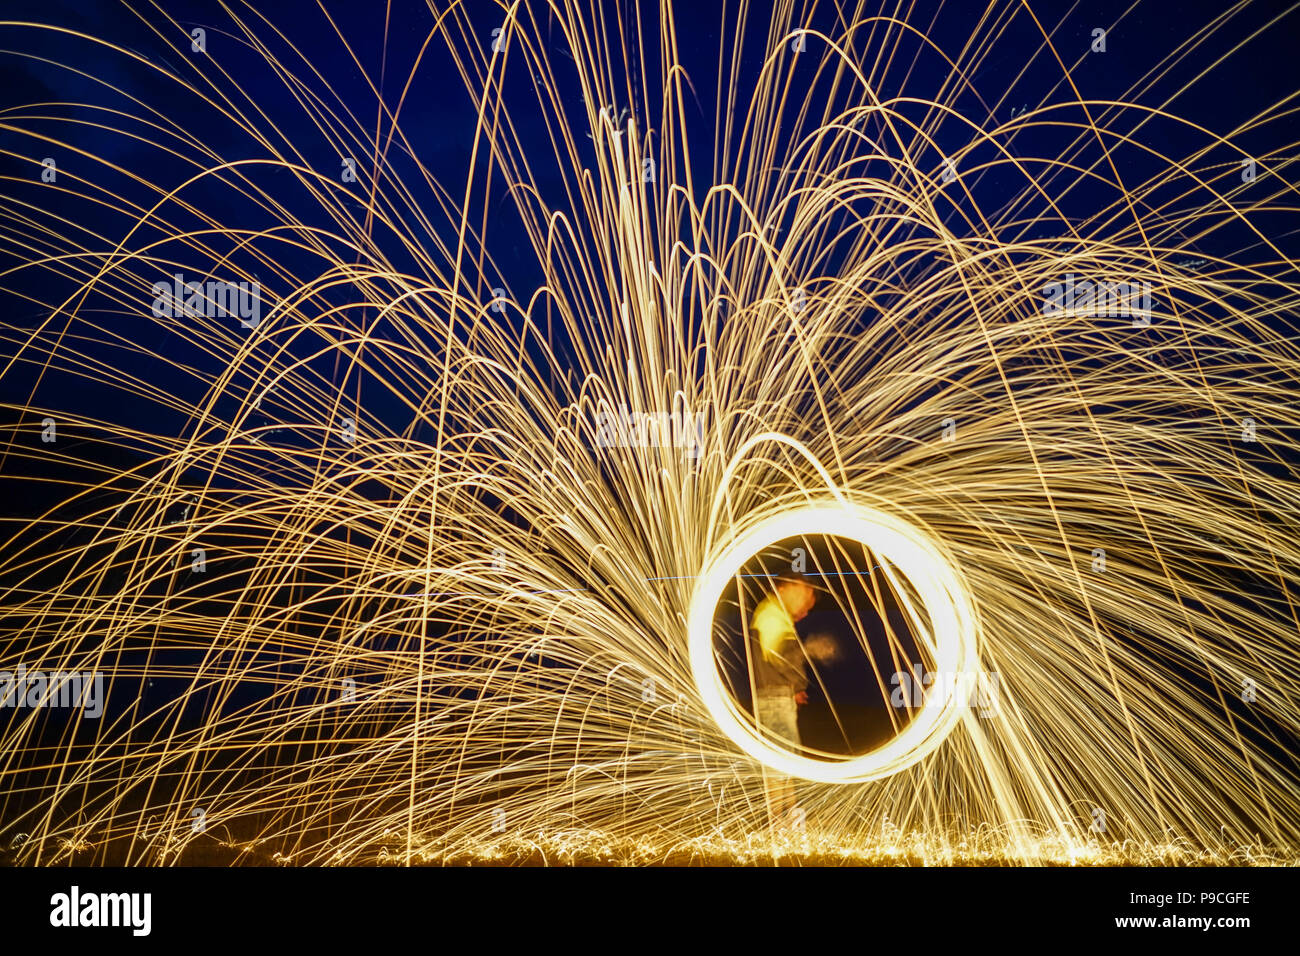 Ring of fire with long exposure at night. Light background. - Stock Image